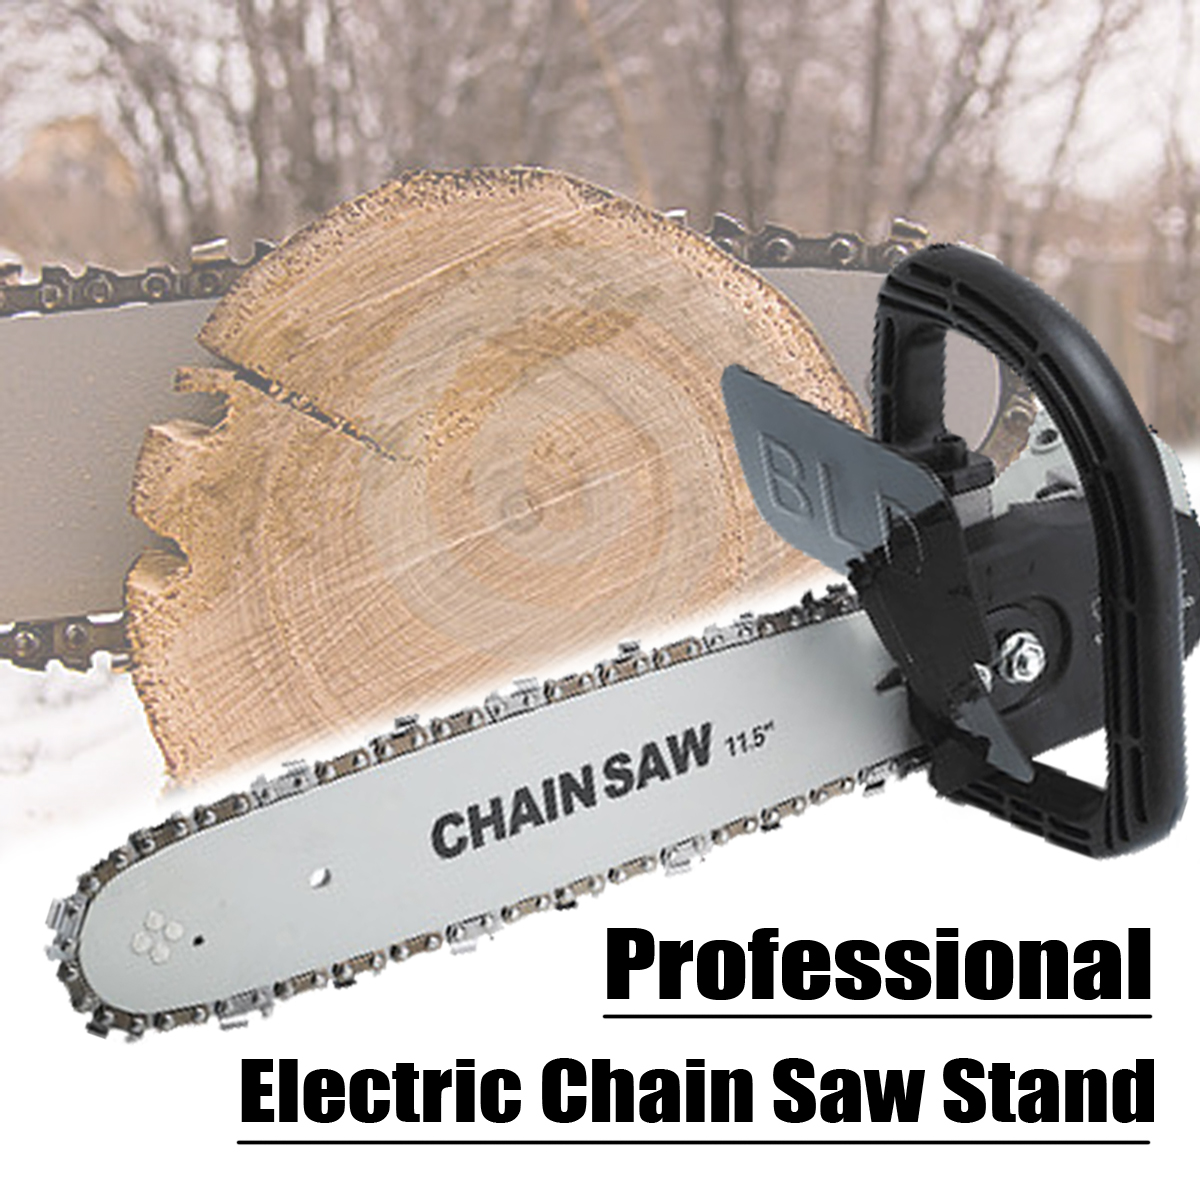 Carbon Steel Grinding Company New Zealand: DIY Electric Saw Chainsaw Bracket Set High Carbon Steel